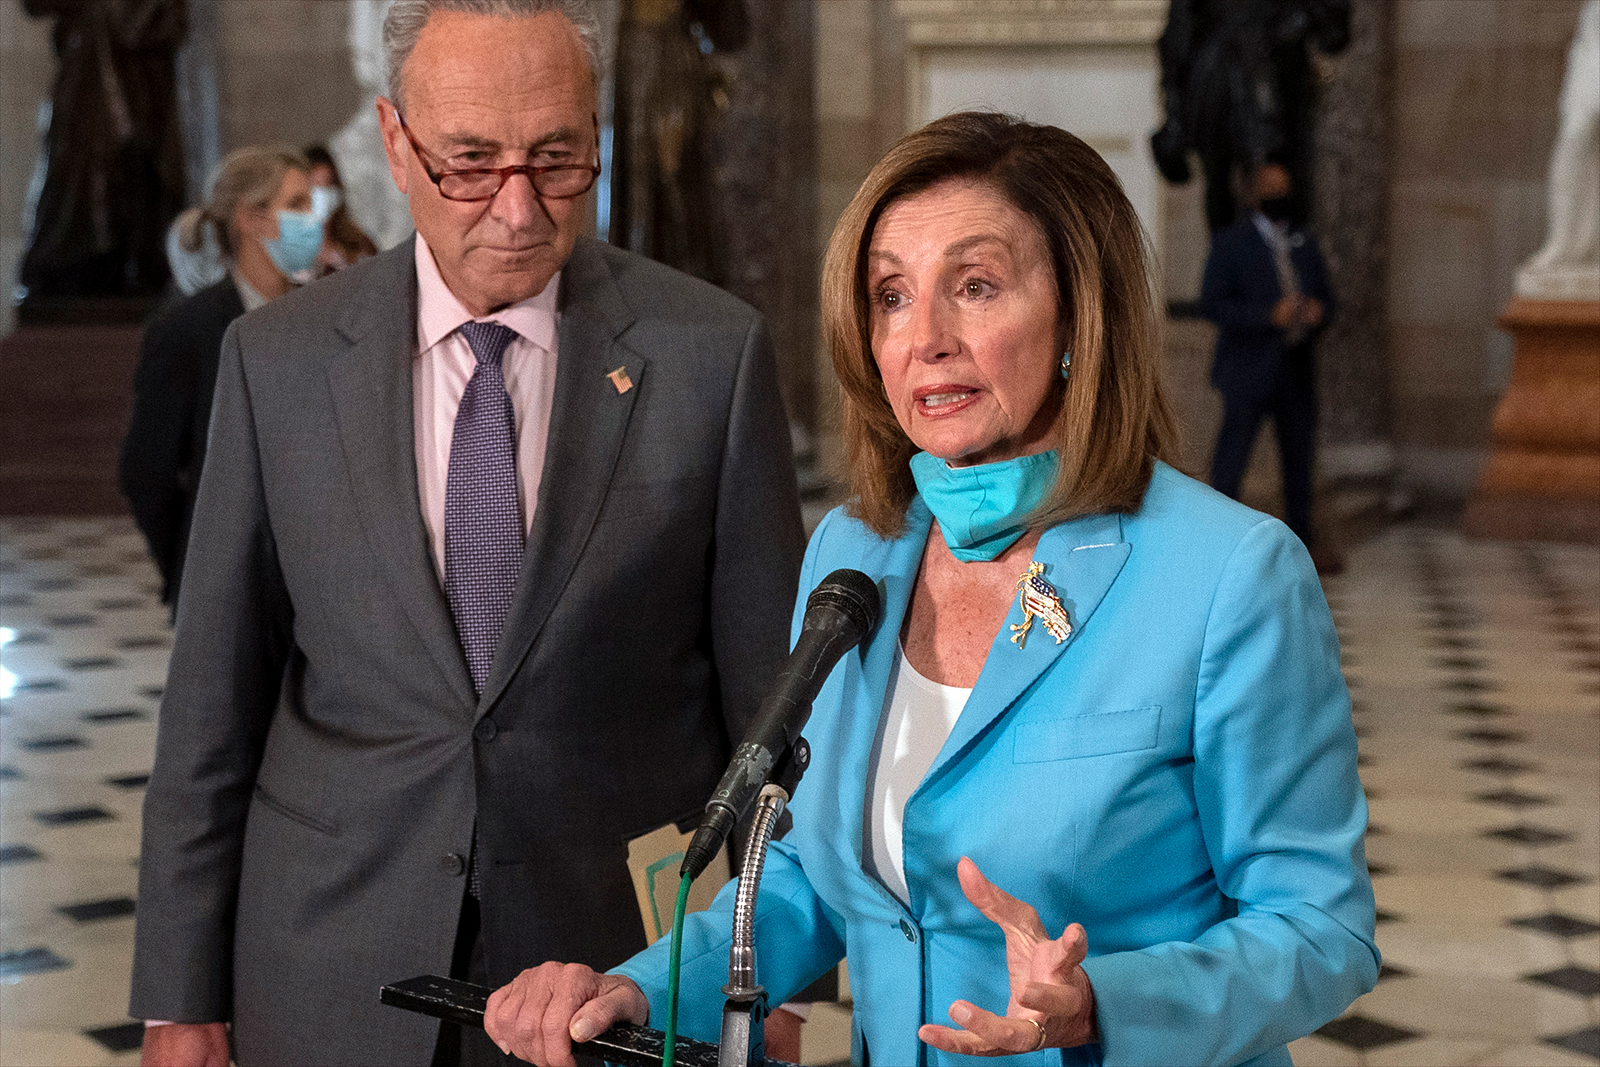 House Speaker Nancy Pelosi of Calif., joined by Senate Minority Leader Sen. Chuck Schumer of N.Y., speaks to media on Capitol Hill in Washington, on Wednesday, August 5.